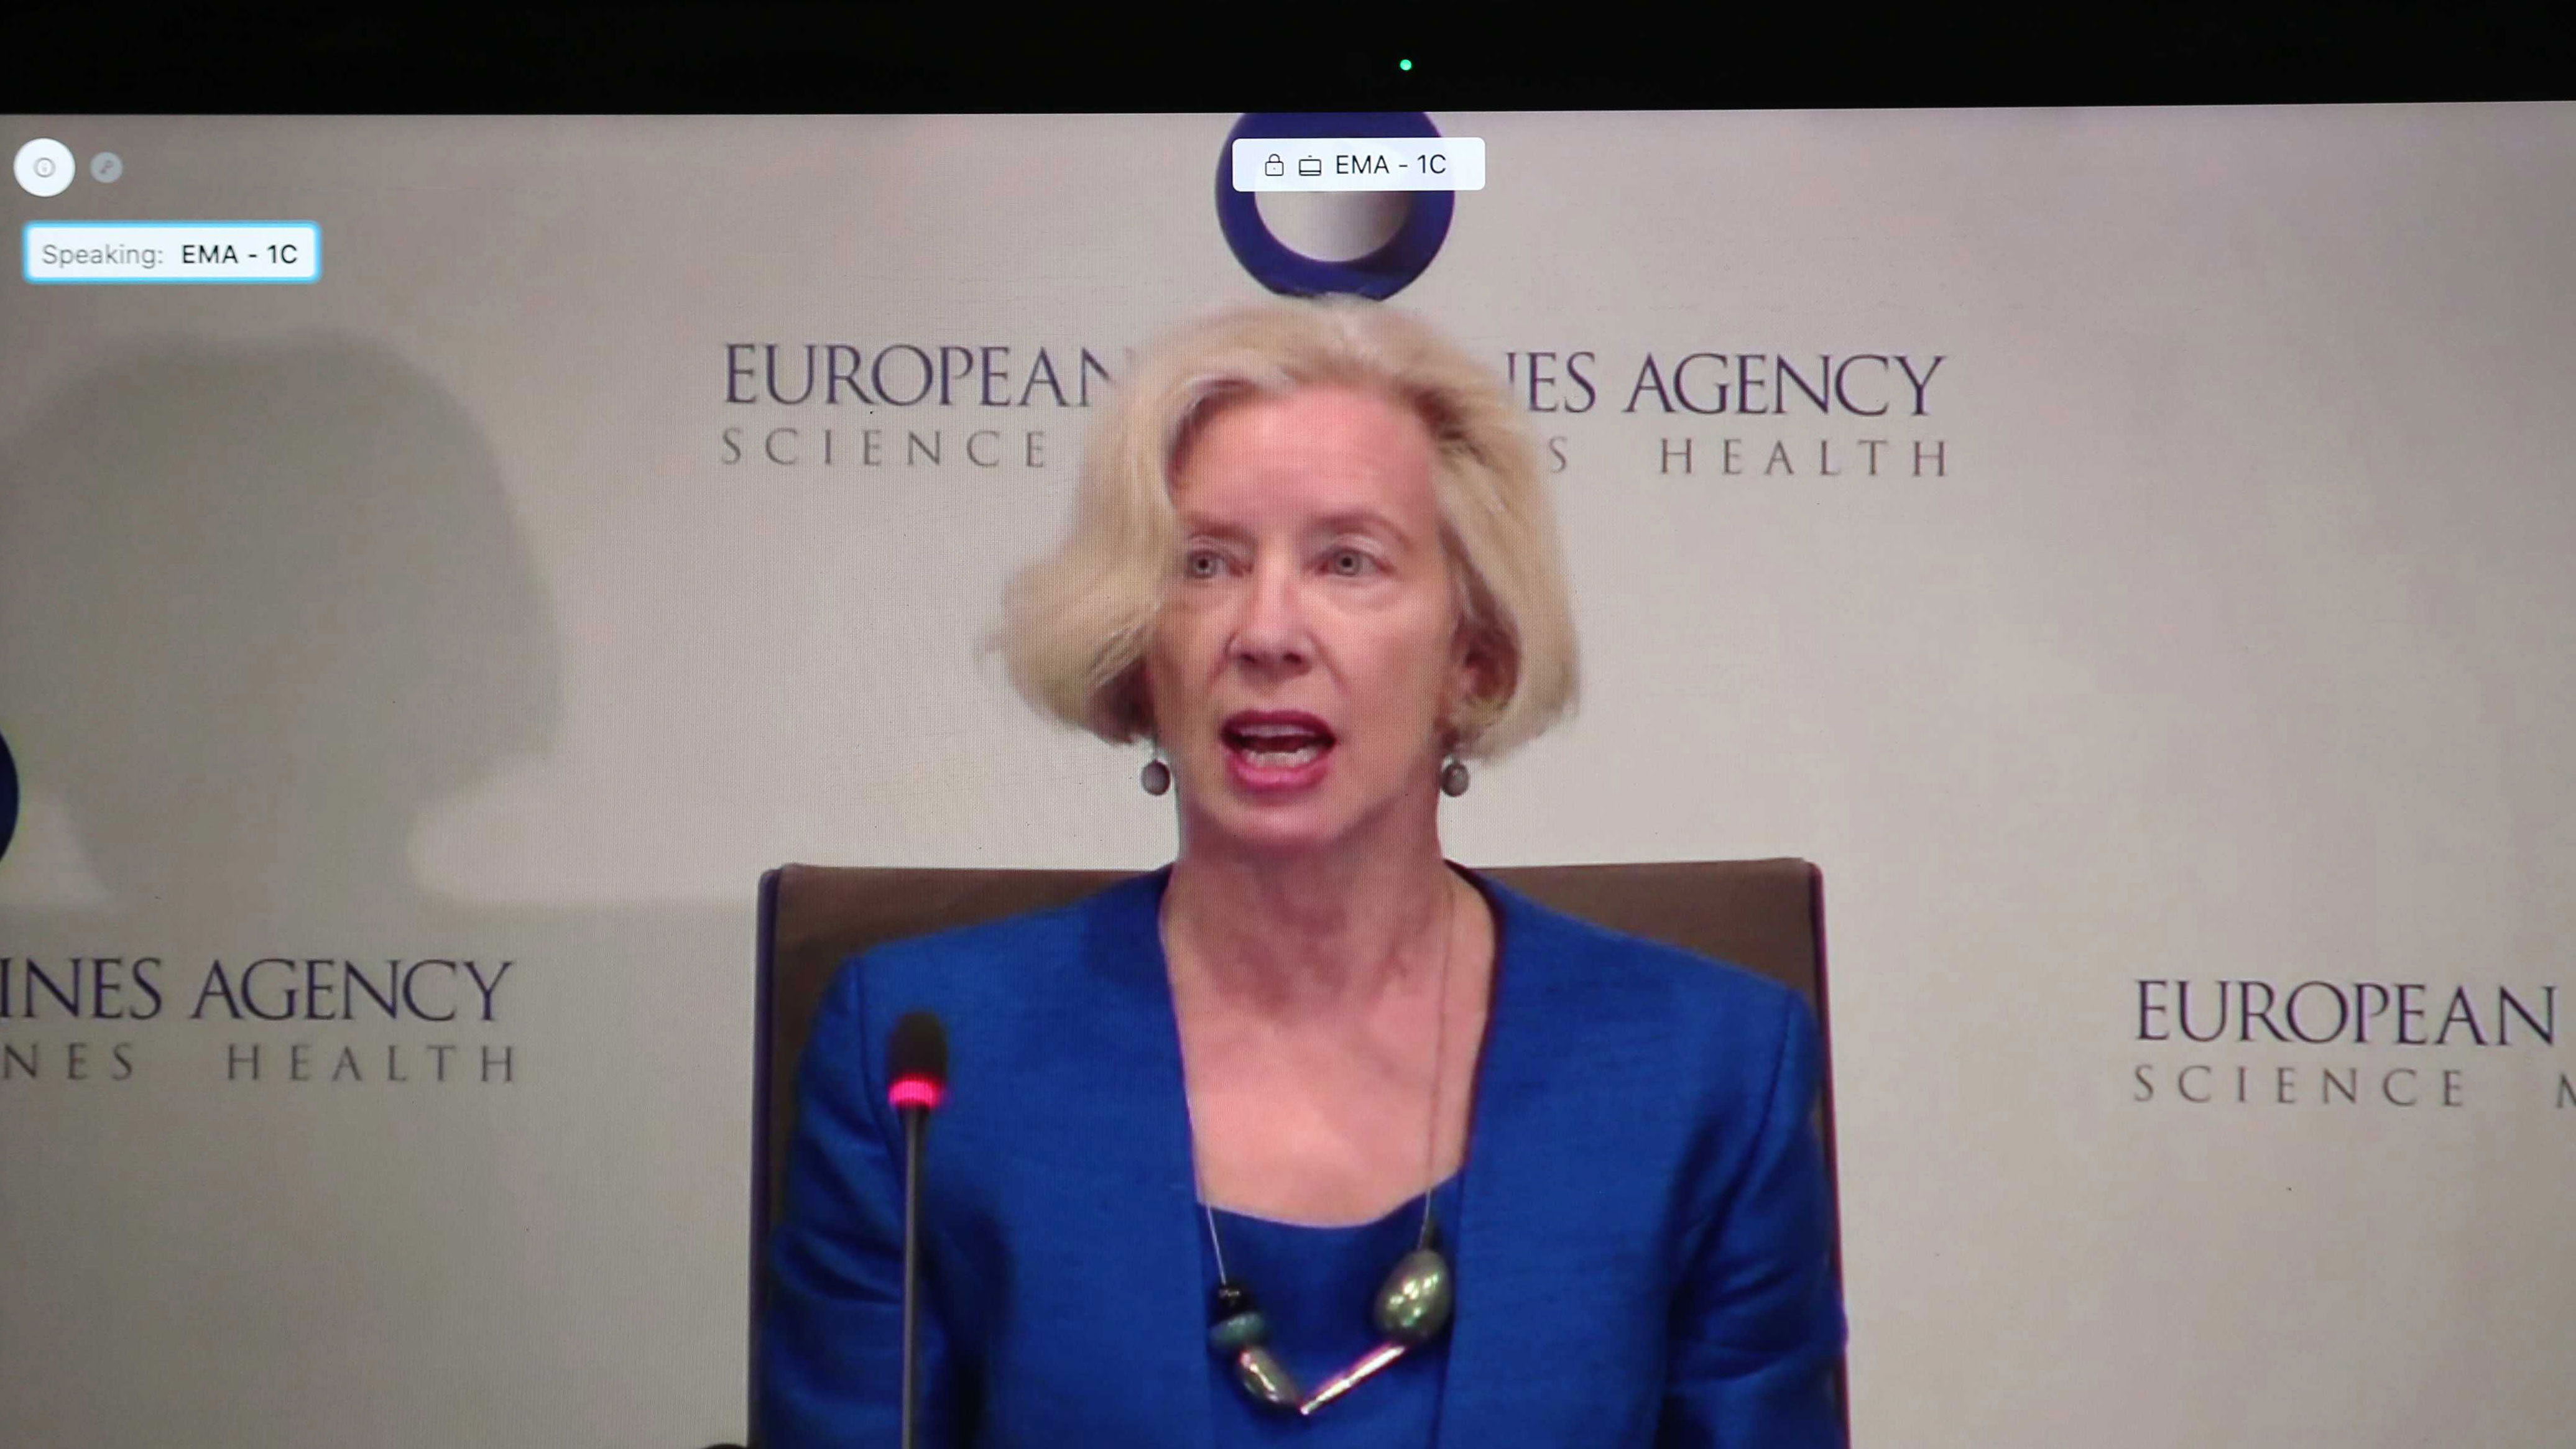 A photo taken of a laptop screen shows Emer Cooke, executive director of the European Medicines Agency, explaining the approval of the Pfizer/BioNTech Covid-19 vaccine during an online press conference in Amsterdam, Netherlands, on December 21, 2020.